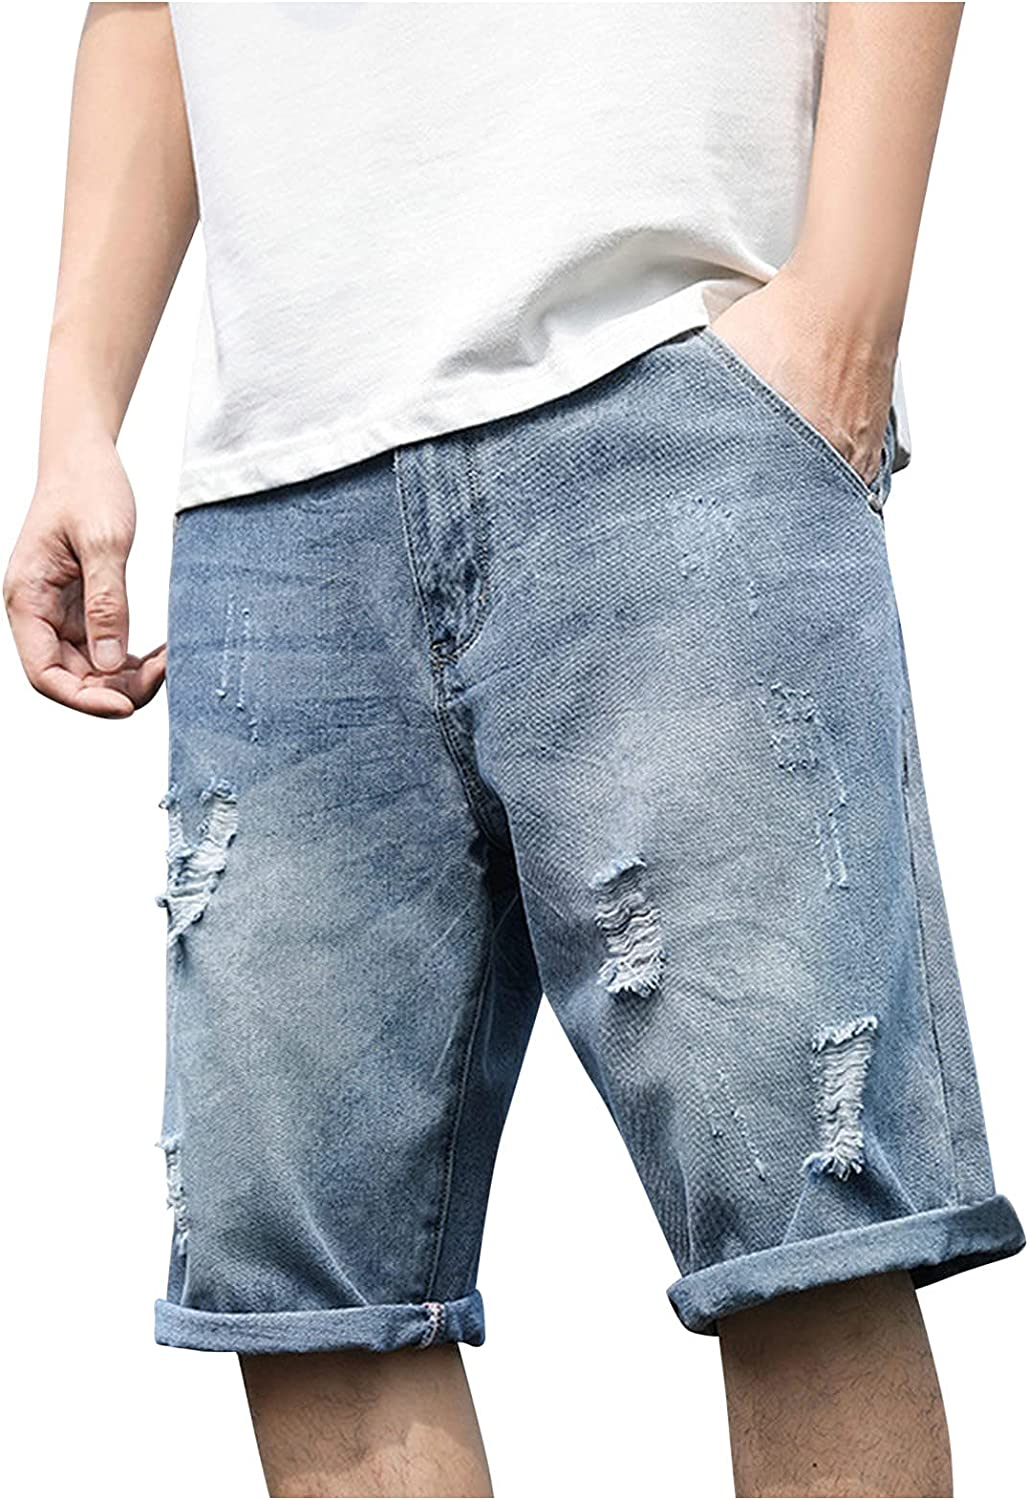 Ripped Jeans Shorts for Men Knee Length Straight-Leg Jeans Short Pants Summer Casual Loose Fit Versatile Shorts - Limsea